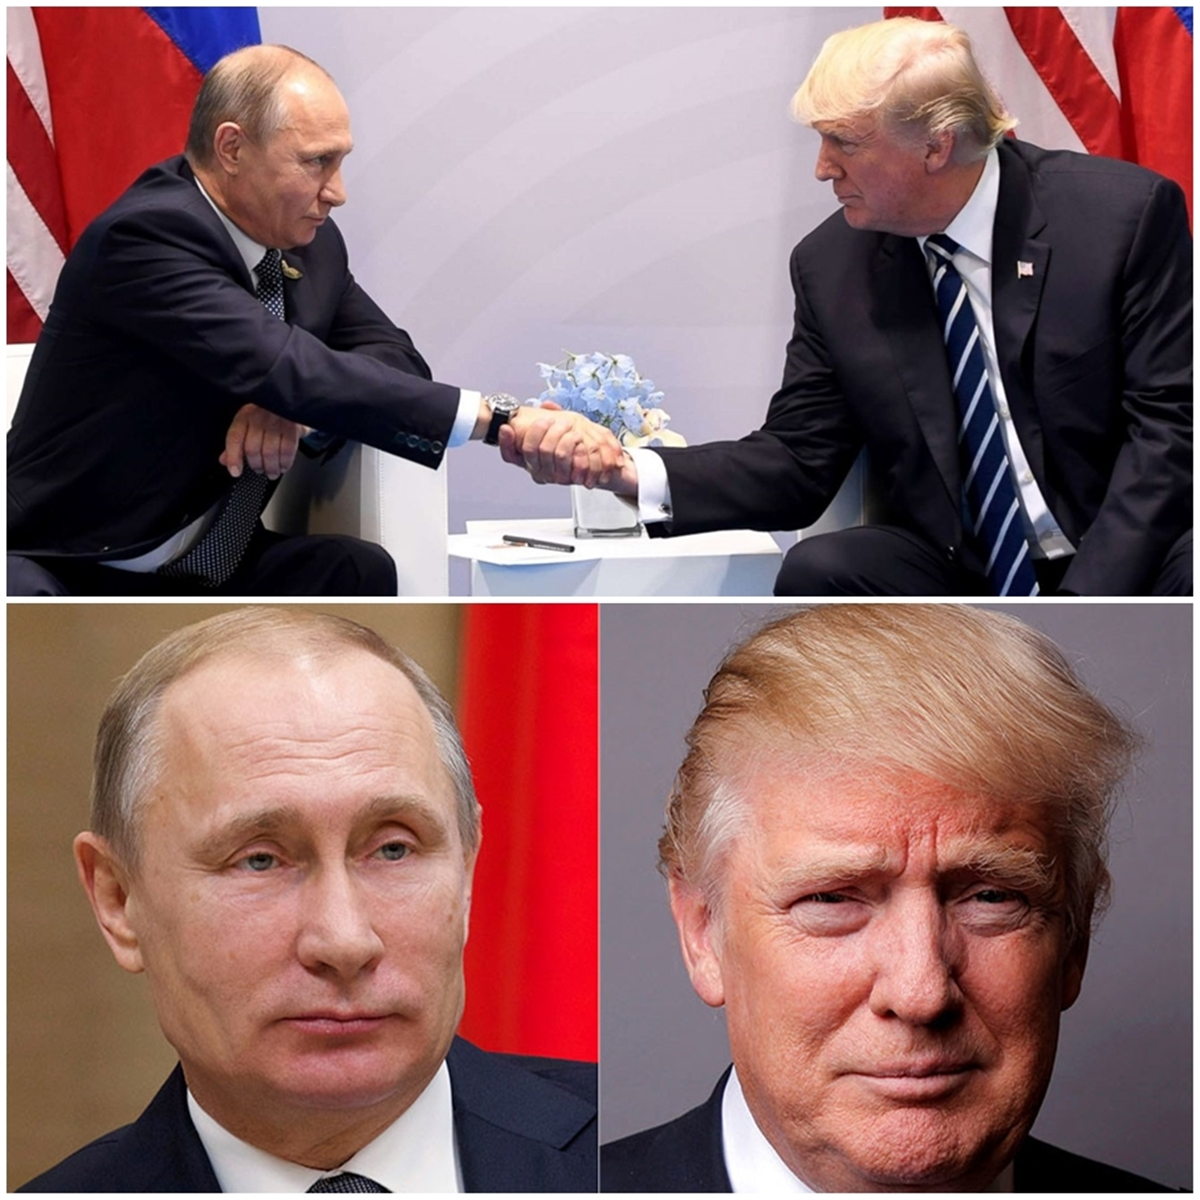 Trump and Putin Meet For First Time 'First Handshake'